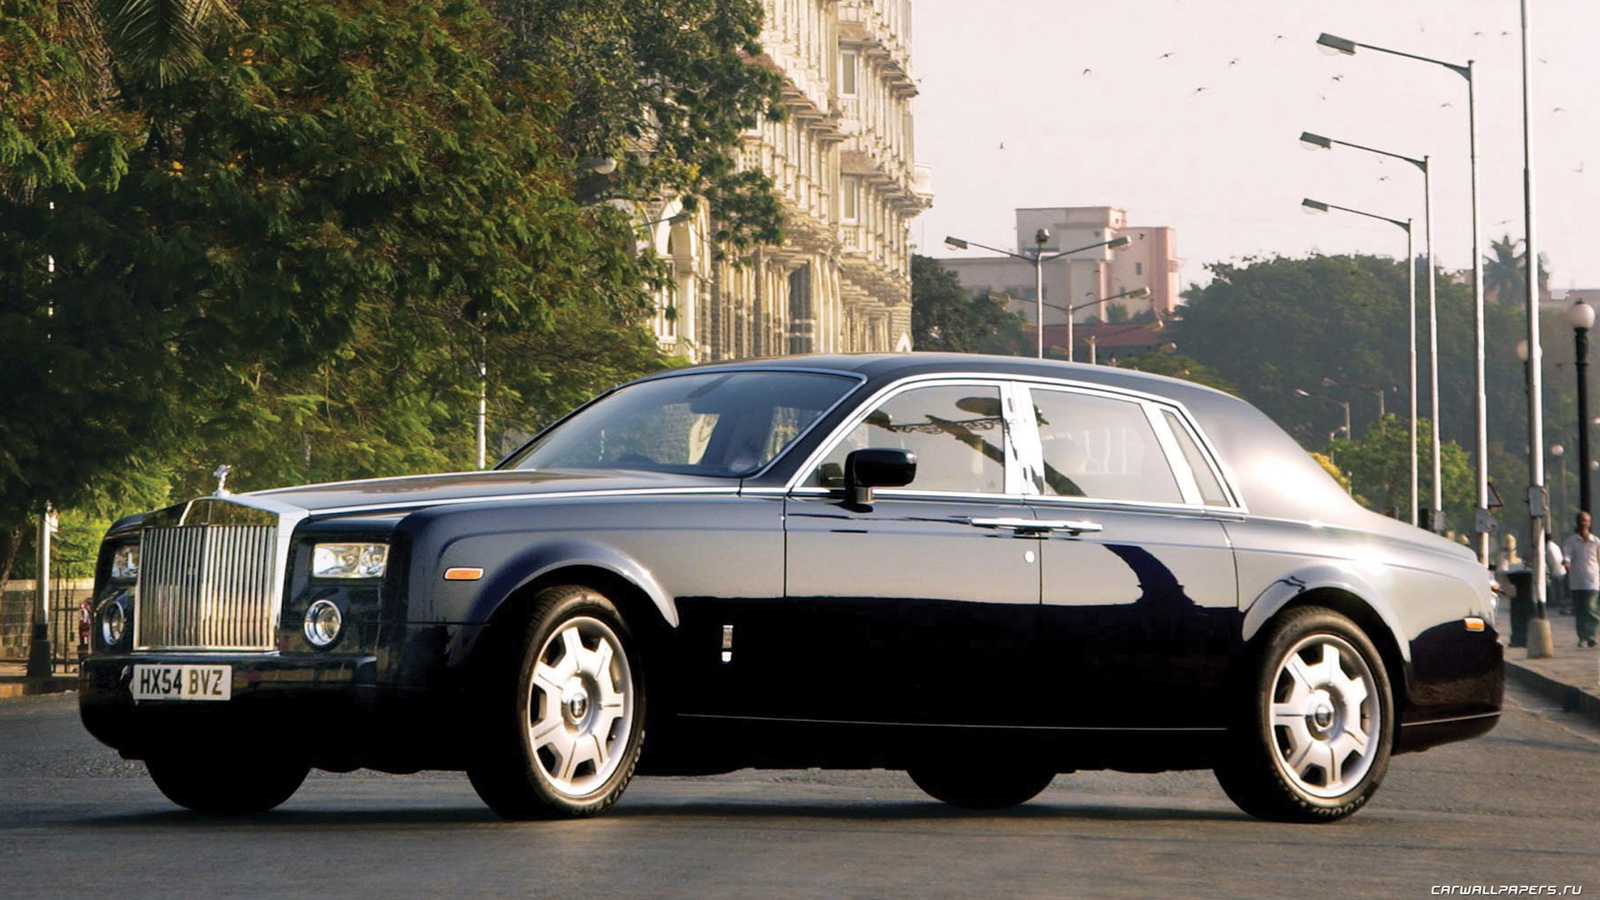 2008 Rolls royce Phantom #12